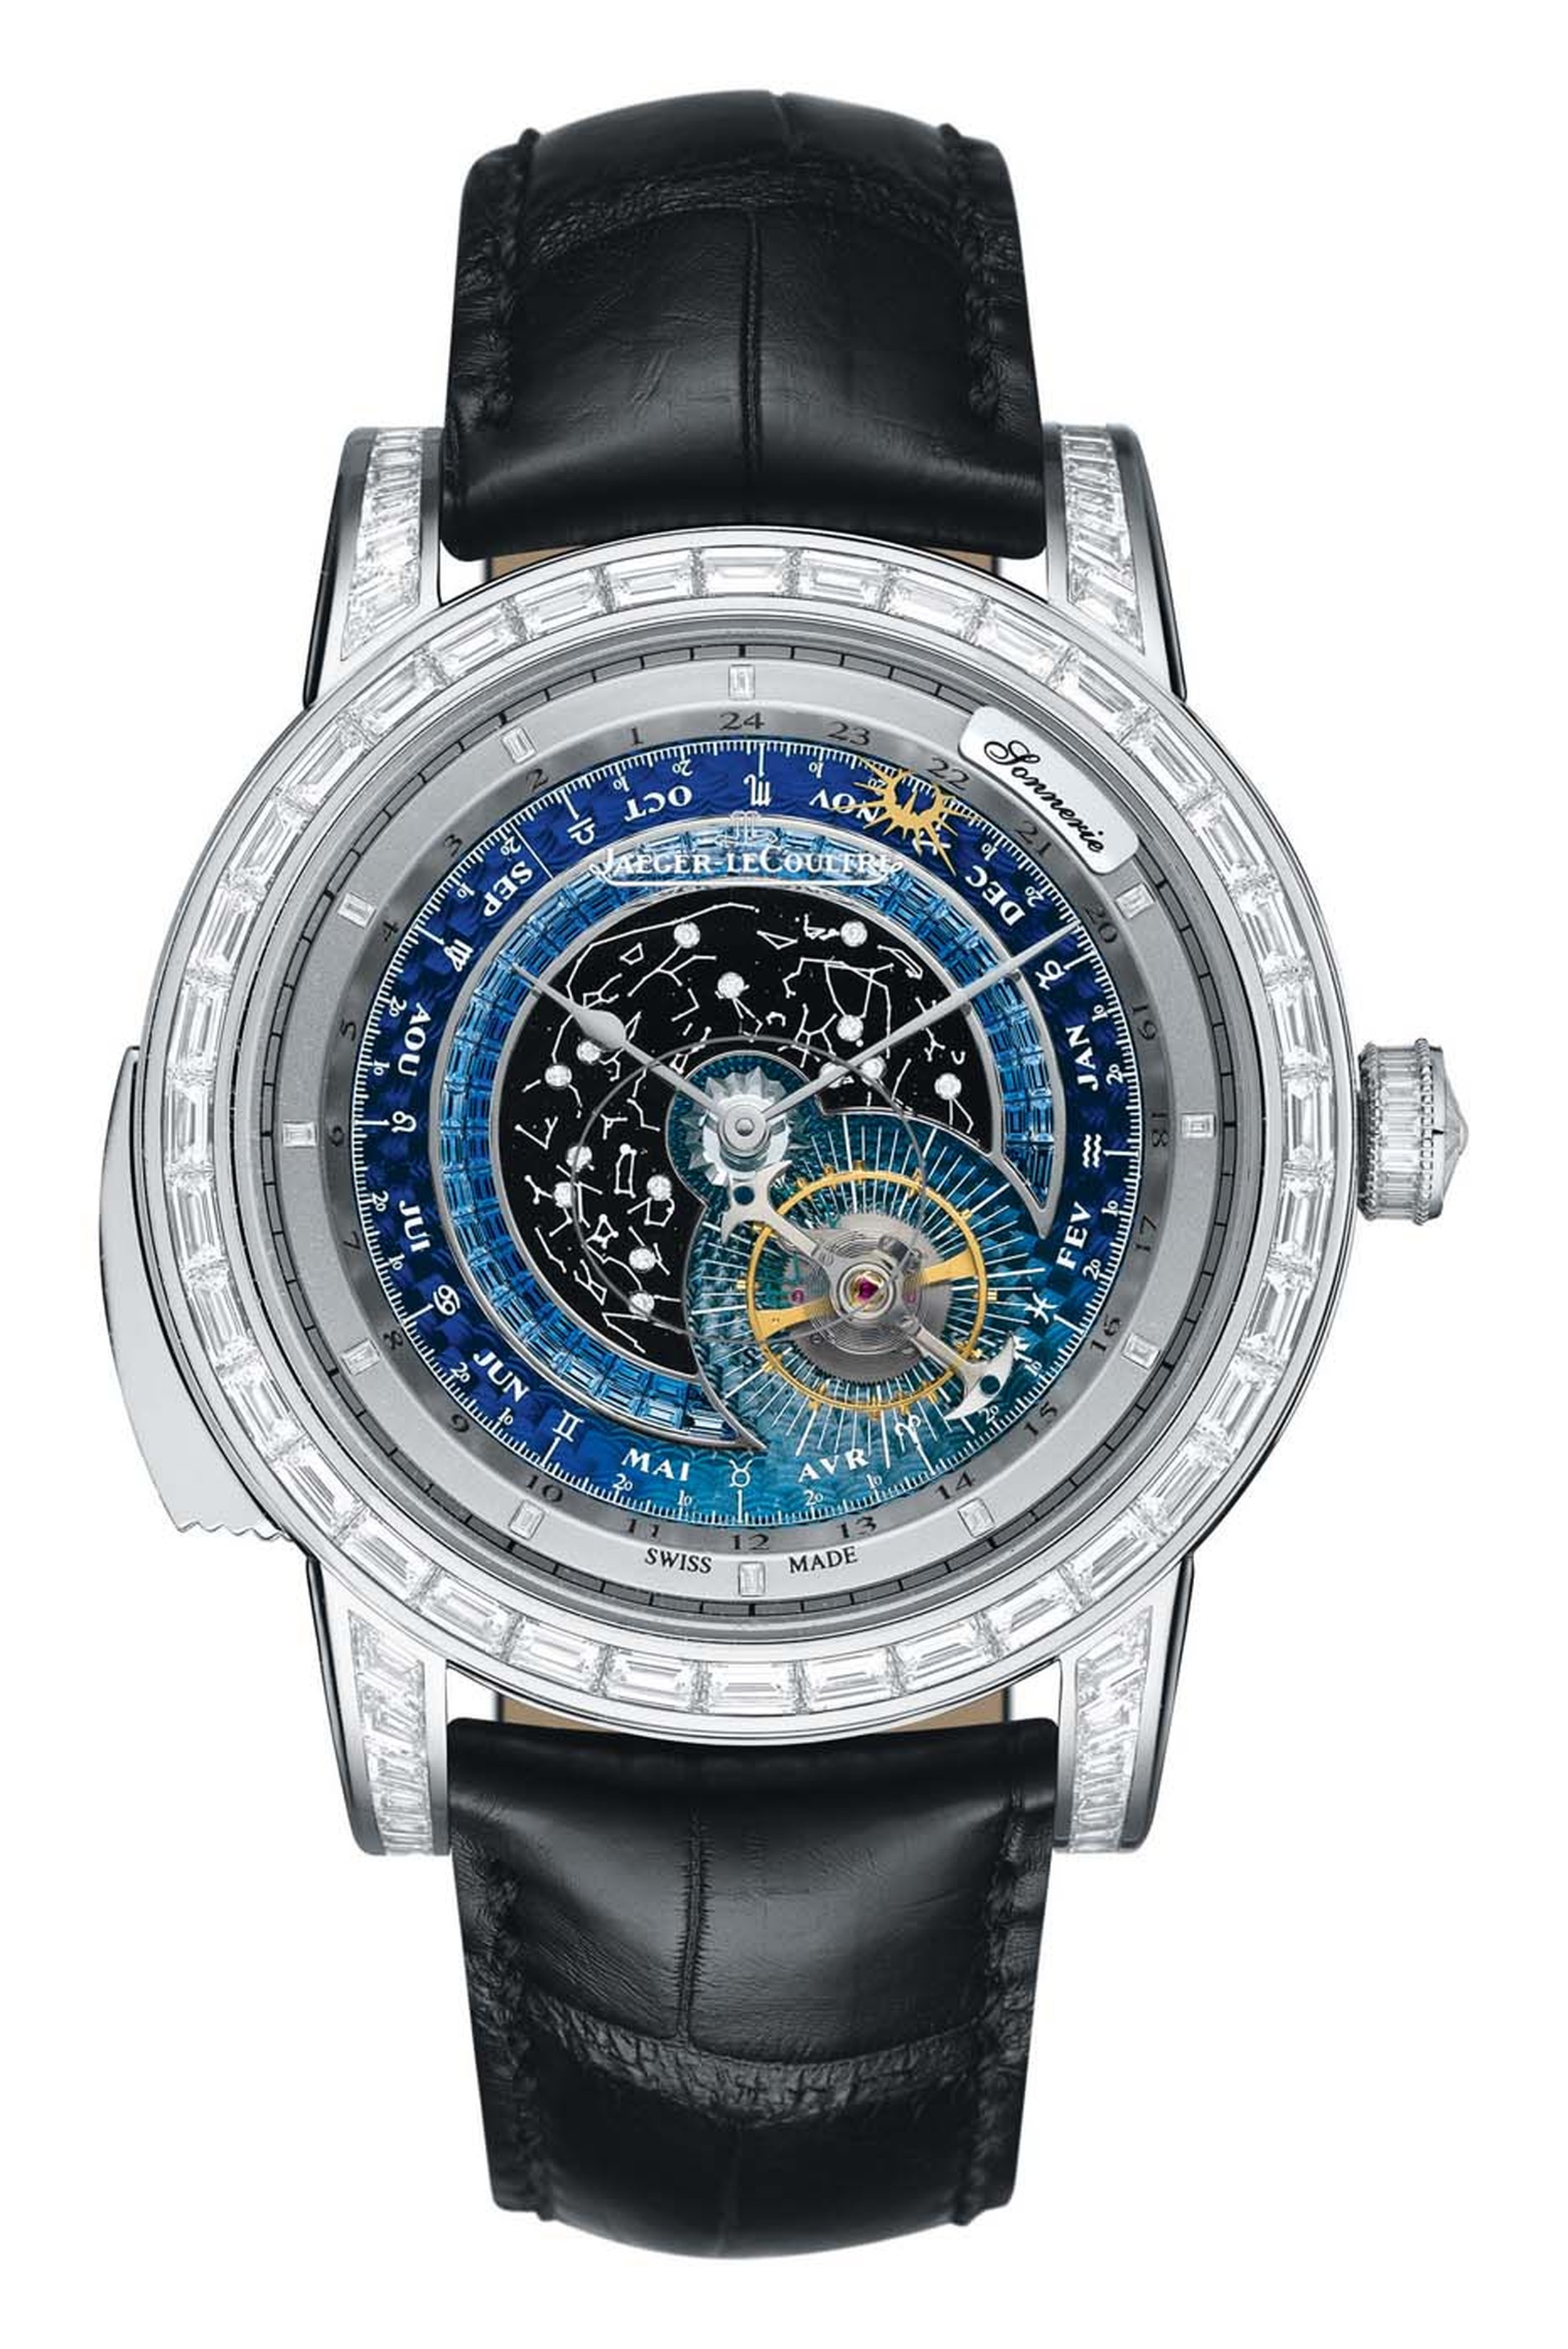 Jaeger-LeCoultre's Master Grande Tradition Grande Complication watch features three complications.  Reproducing the movements of the Earth relative to the Sun and stars, the guilloché dial represents a sky chart and zodiacal map.